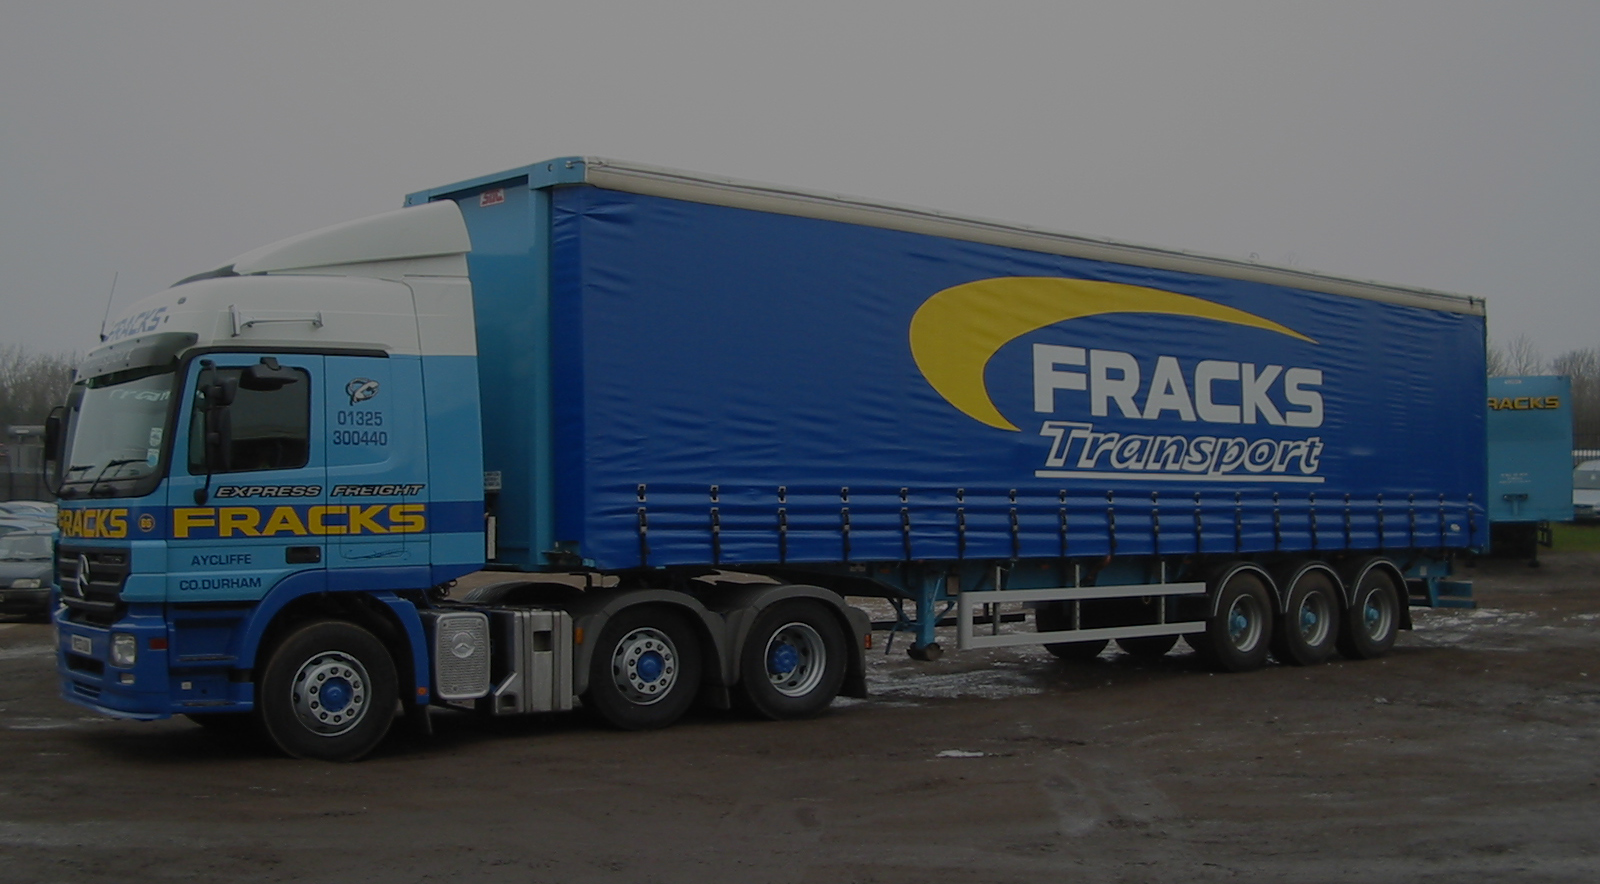 Fracks Transport